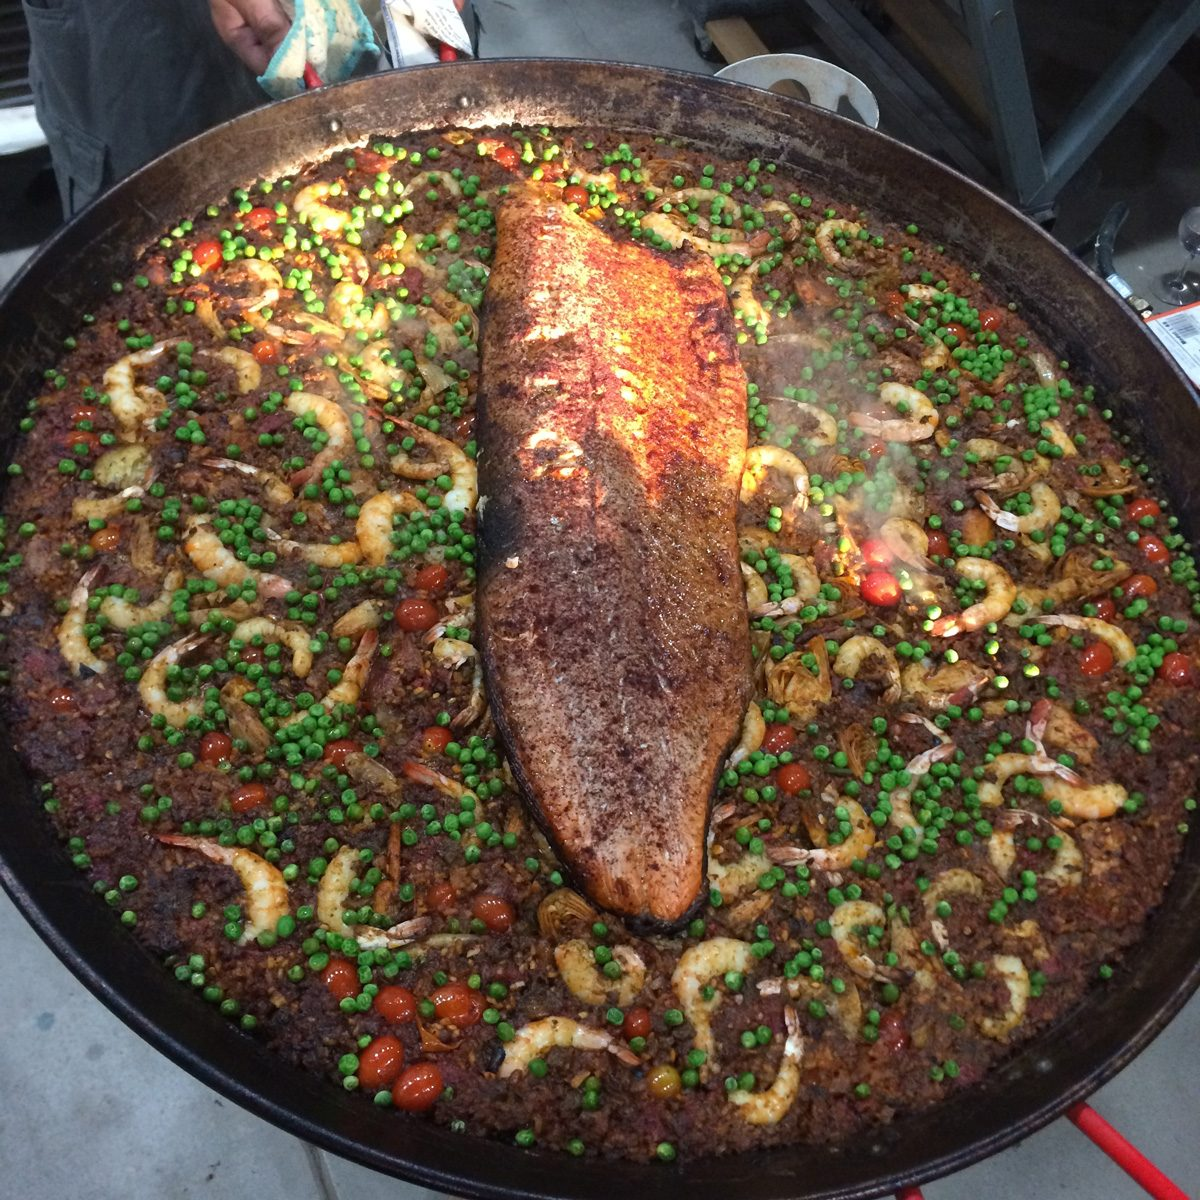 In Santa Fe, the Don of Making Art Safely grills a slab of salmon with chipotle to lay on top of the finished paella.